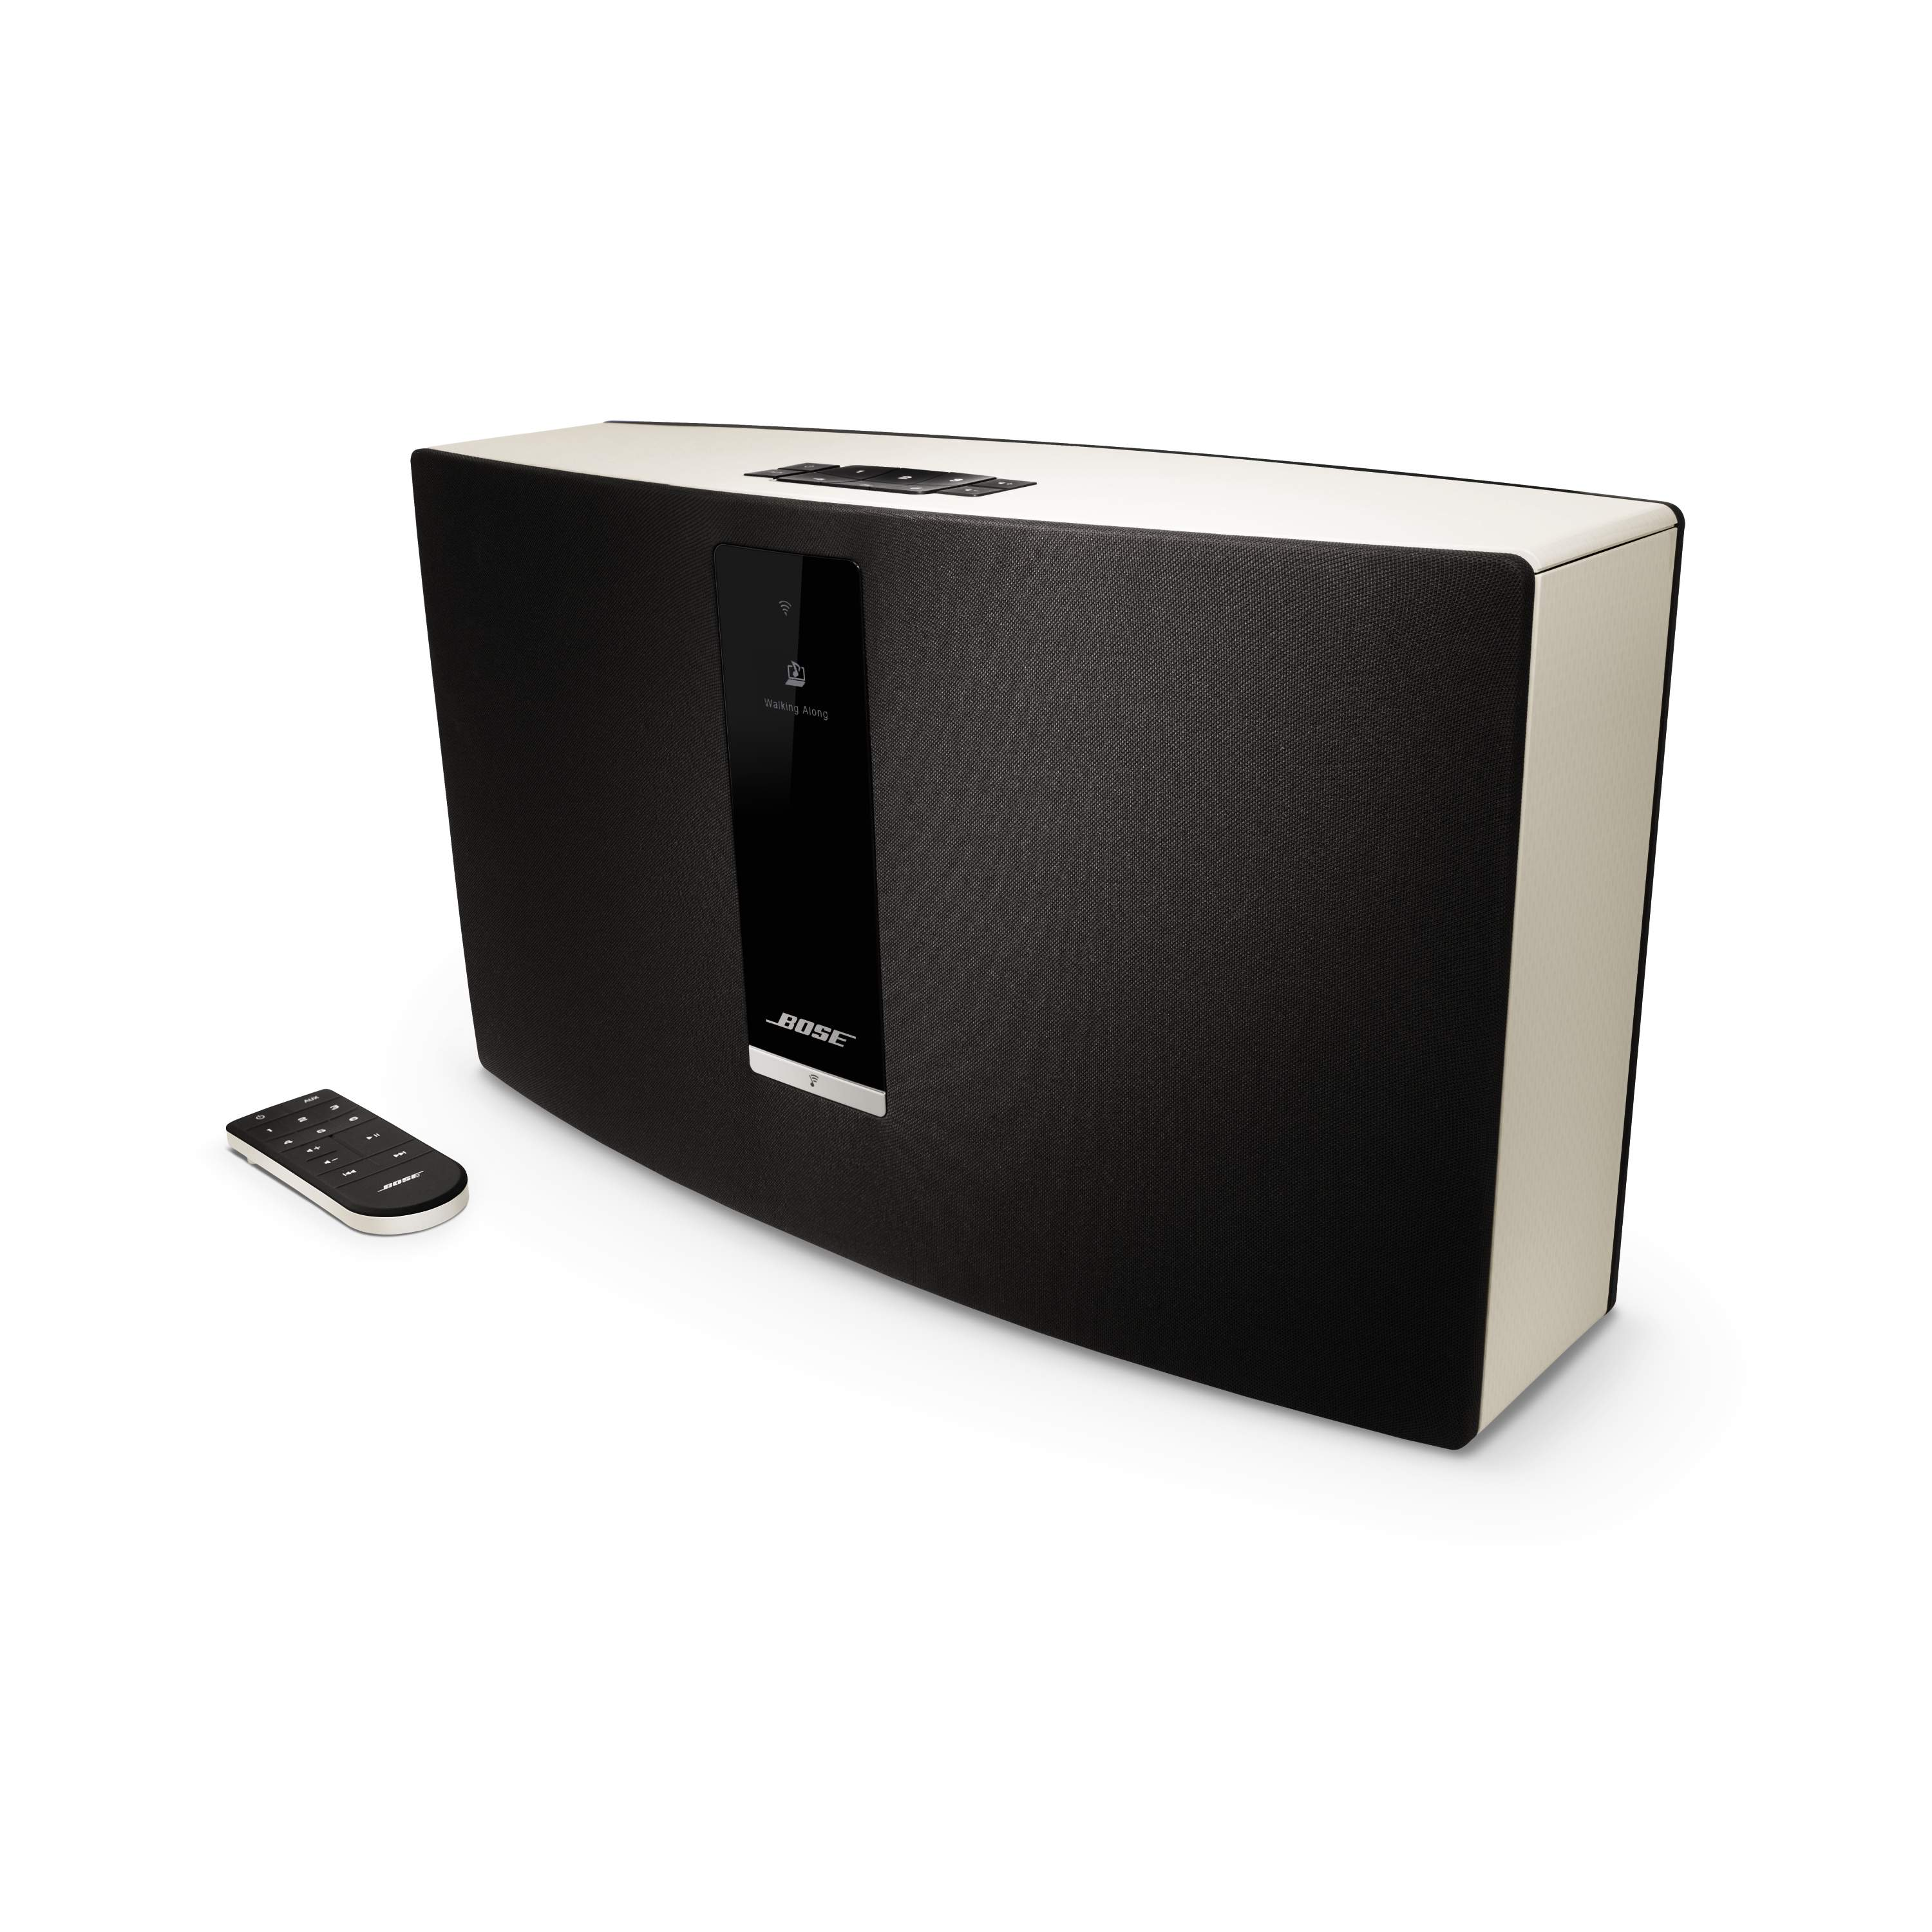 soundtouch 30 series iii bose soundtouch 30 series iii audiofanzine. Black Bedroom Furniture Sets. Home Design Ideas